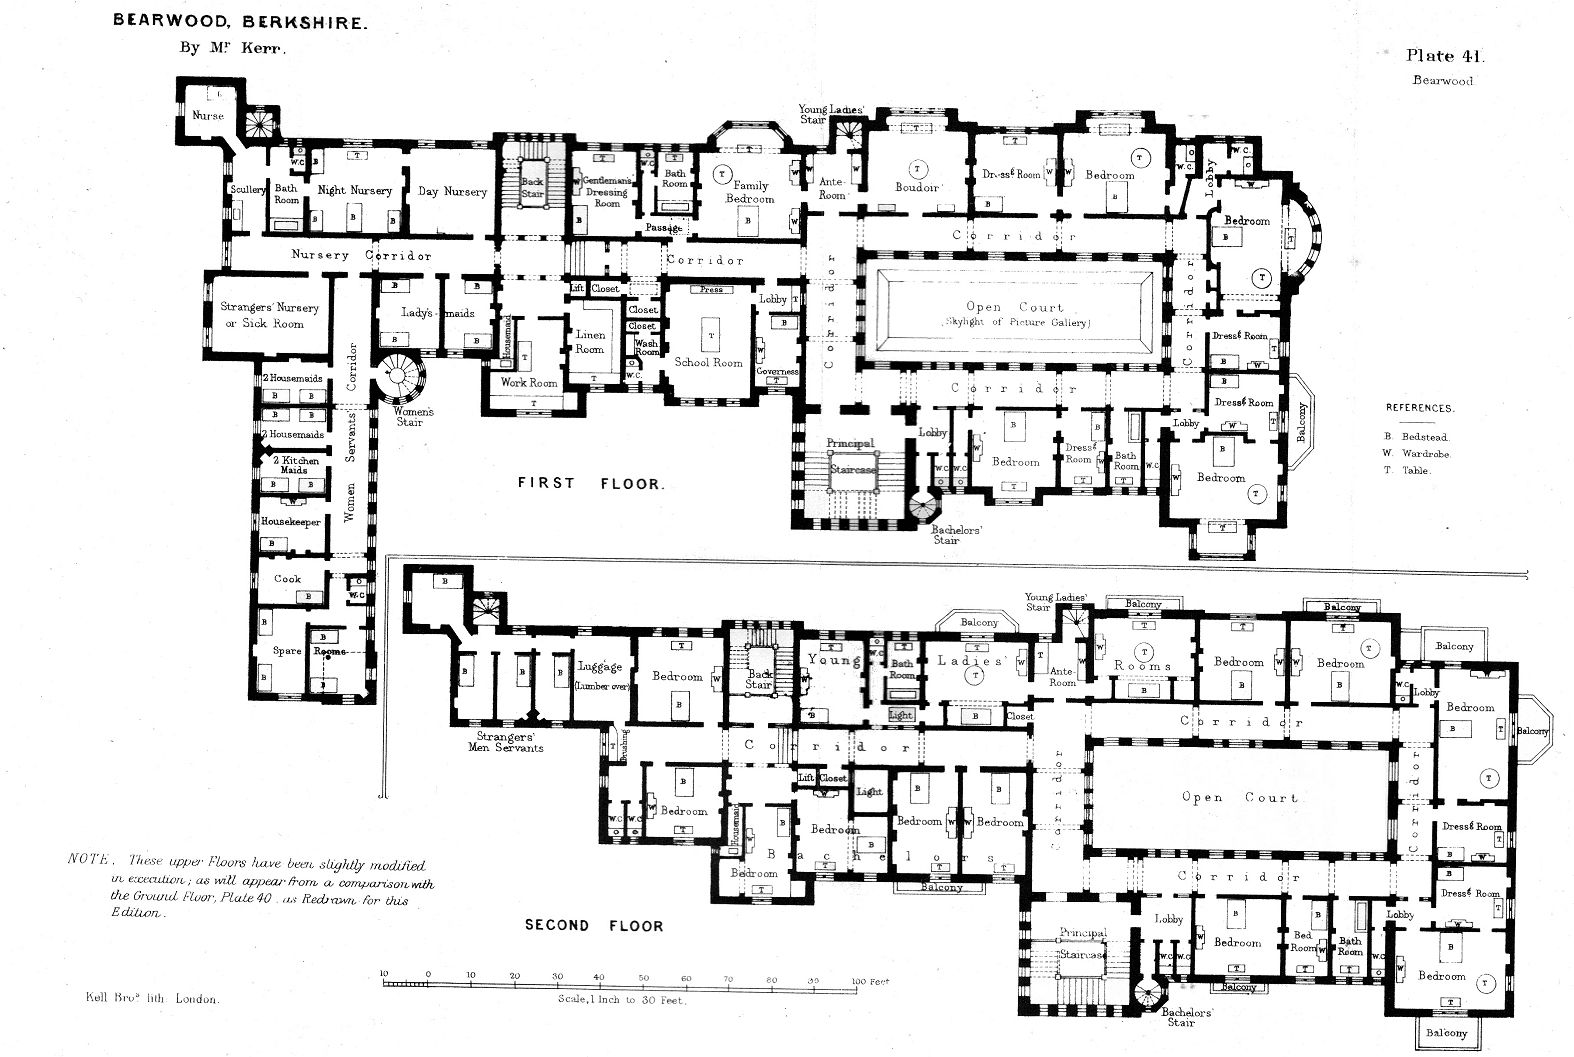 First And Second Floor Plans Of Bearwood House